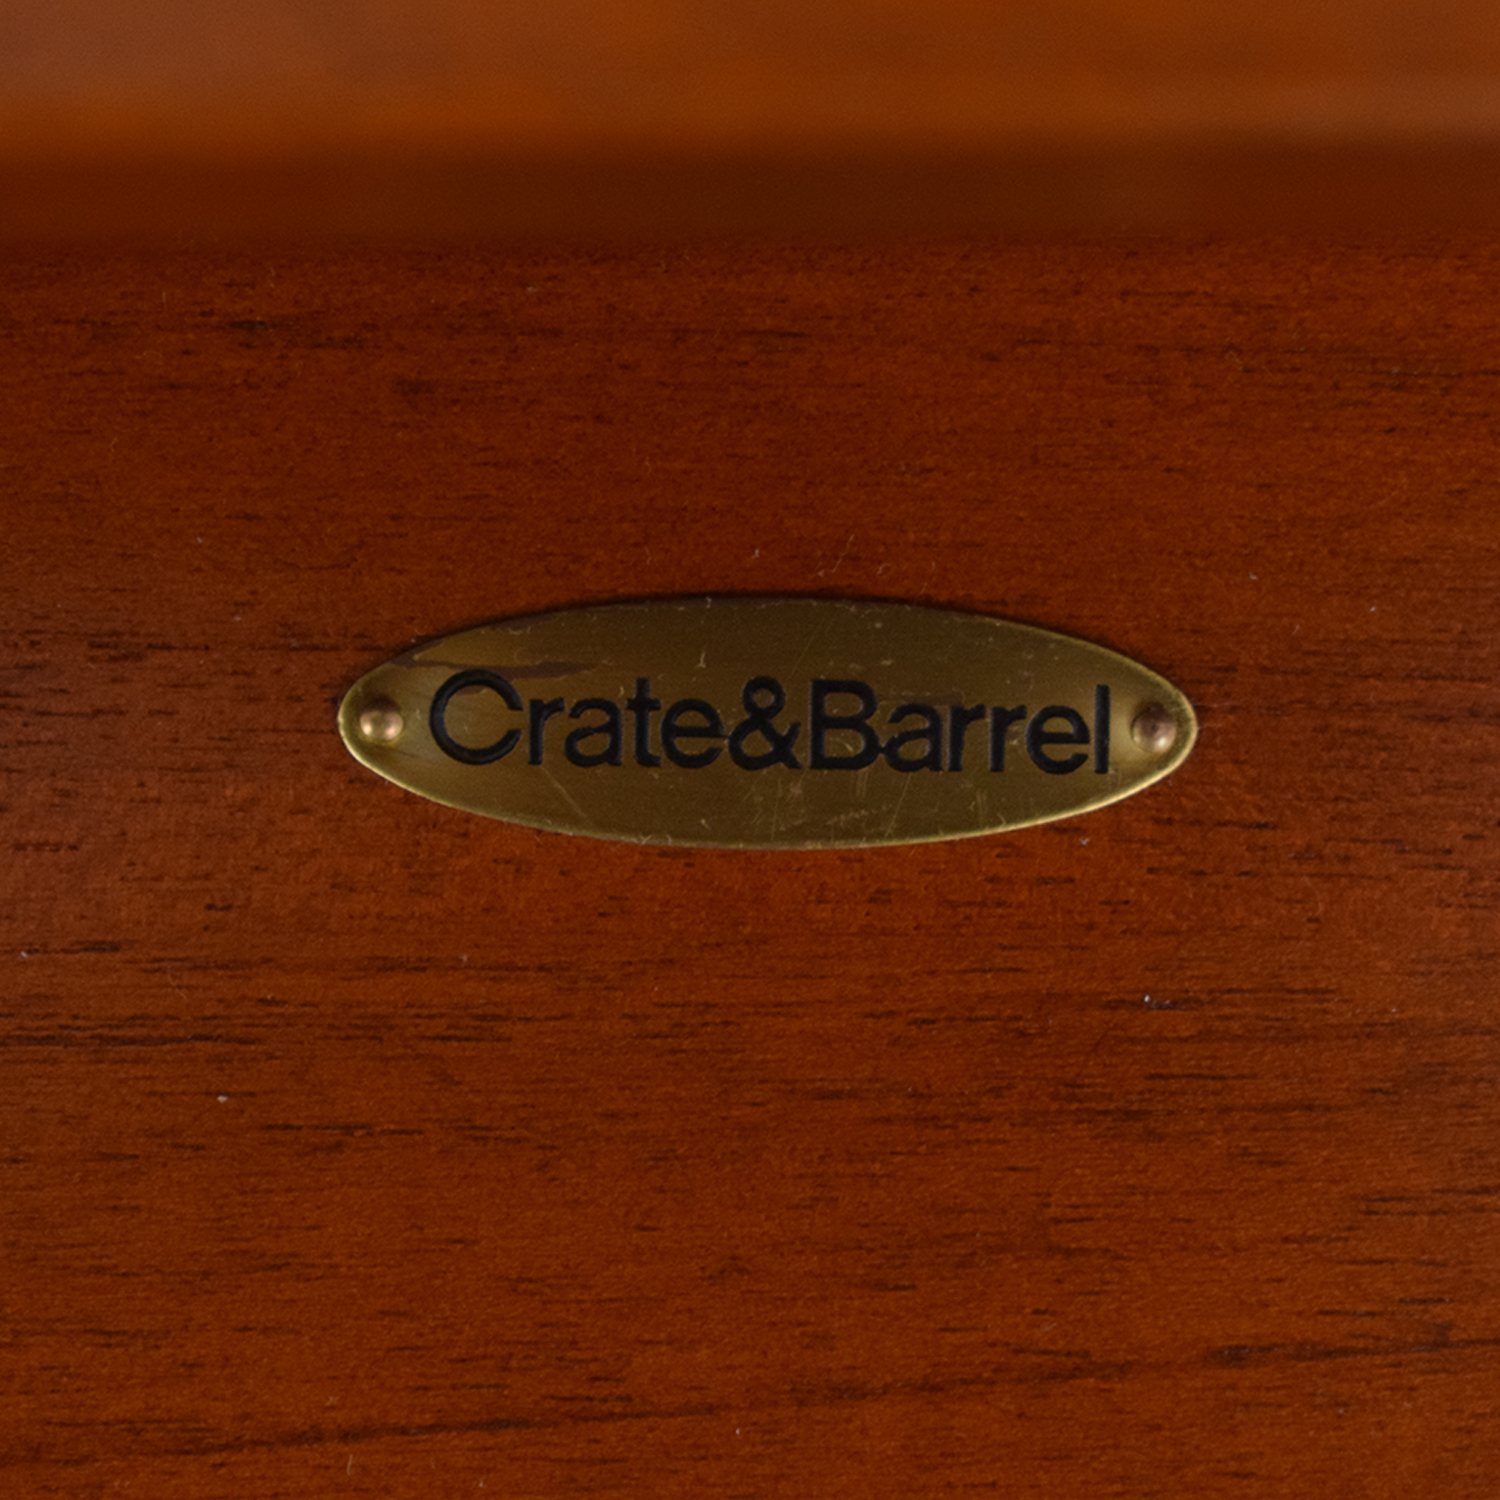 Crate & Barrel Crate & Barrel Desk dimensions